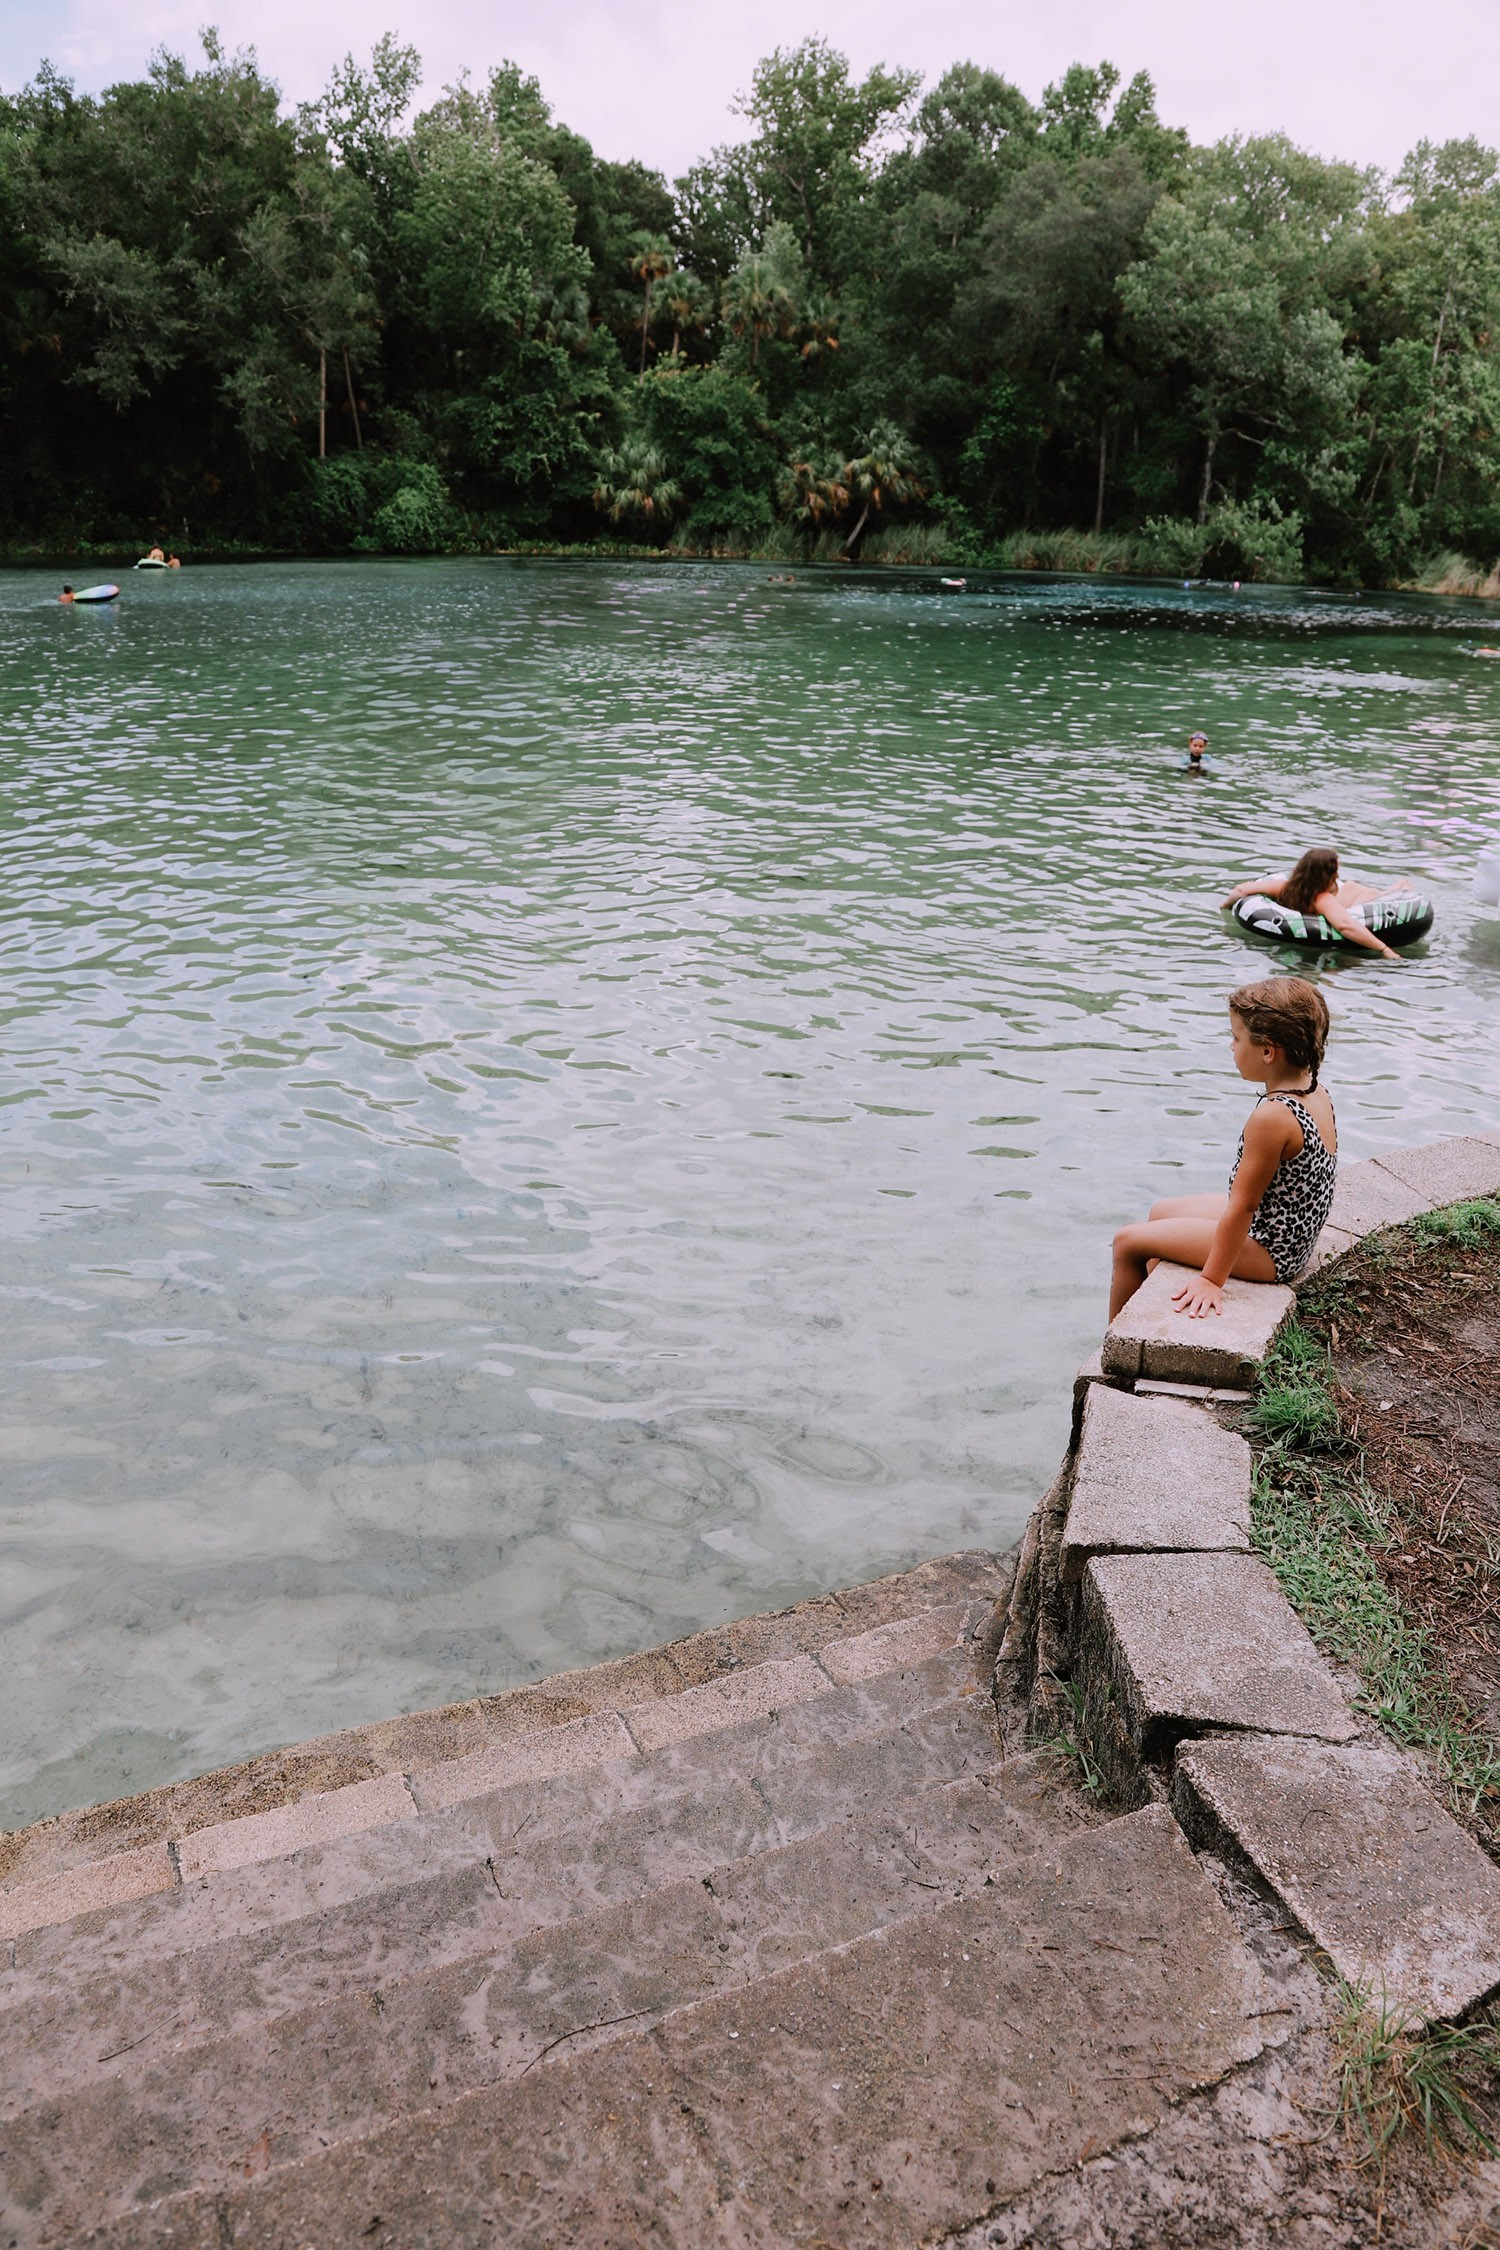 Spectacular Lake County, Florida Staycation Ideas for the Family! Alexander Springs Recreation Area   Lake County by popular Florida blog, Fresh Mommy Blog: image of a family swimming at Alexander Springs Recreation Area.